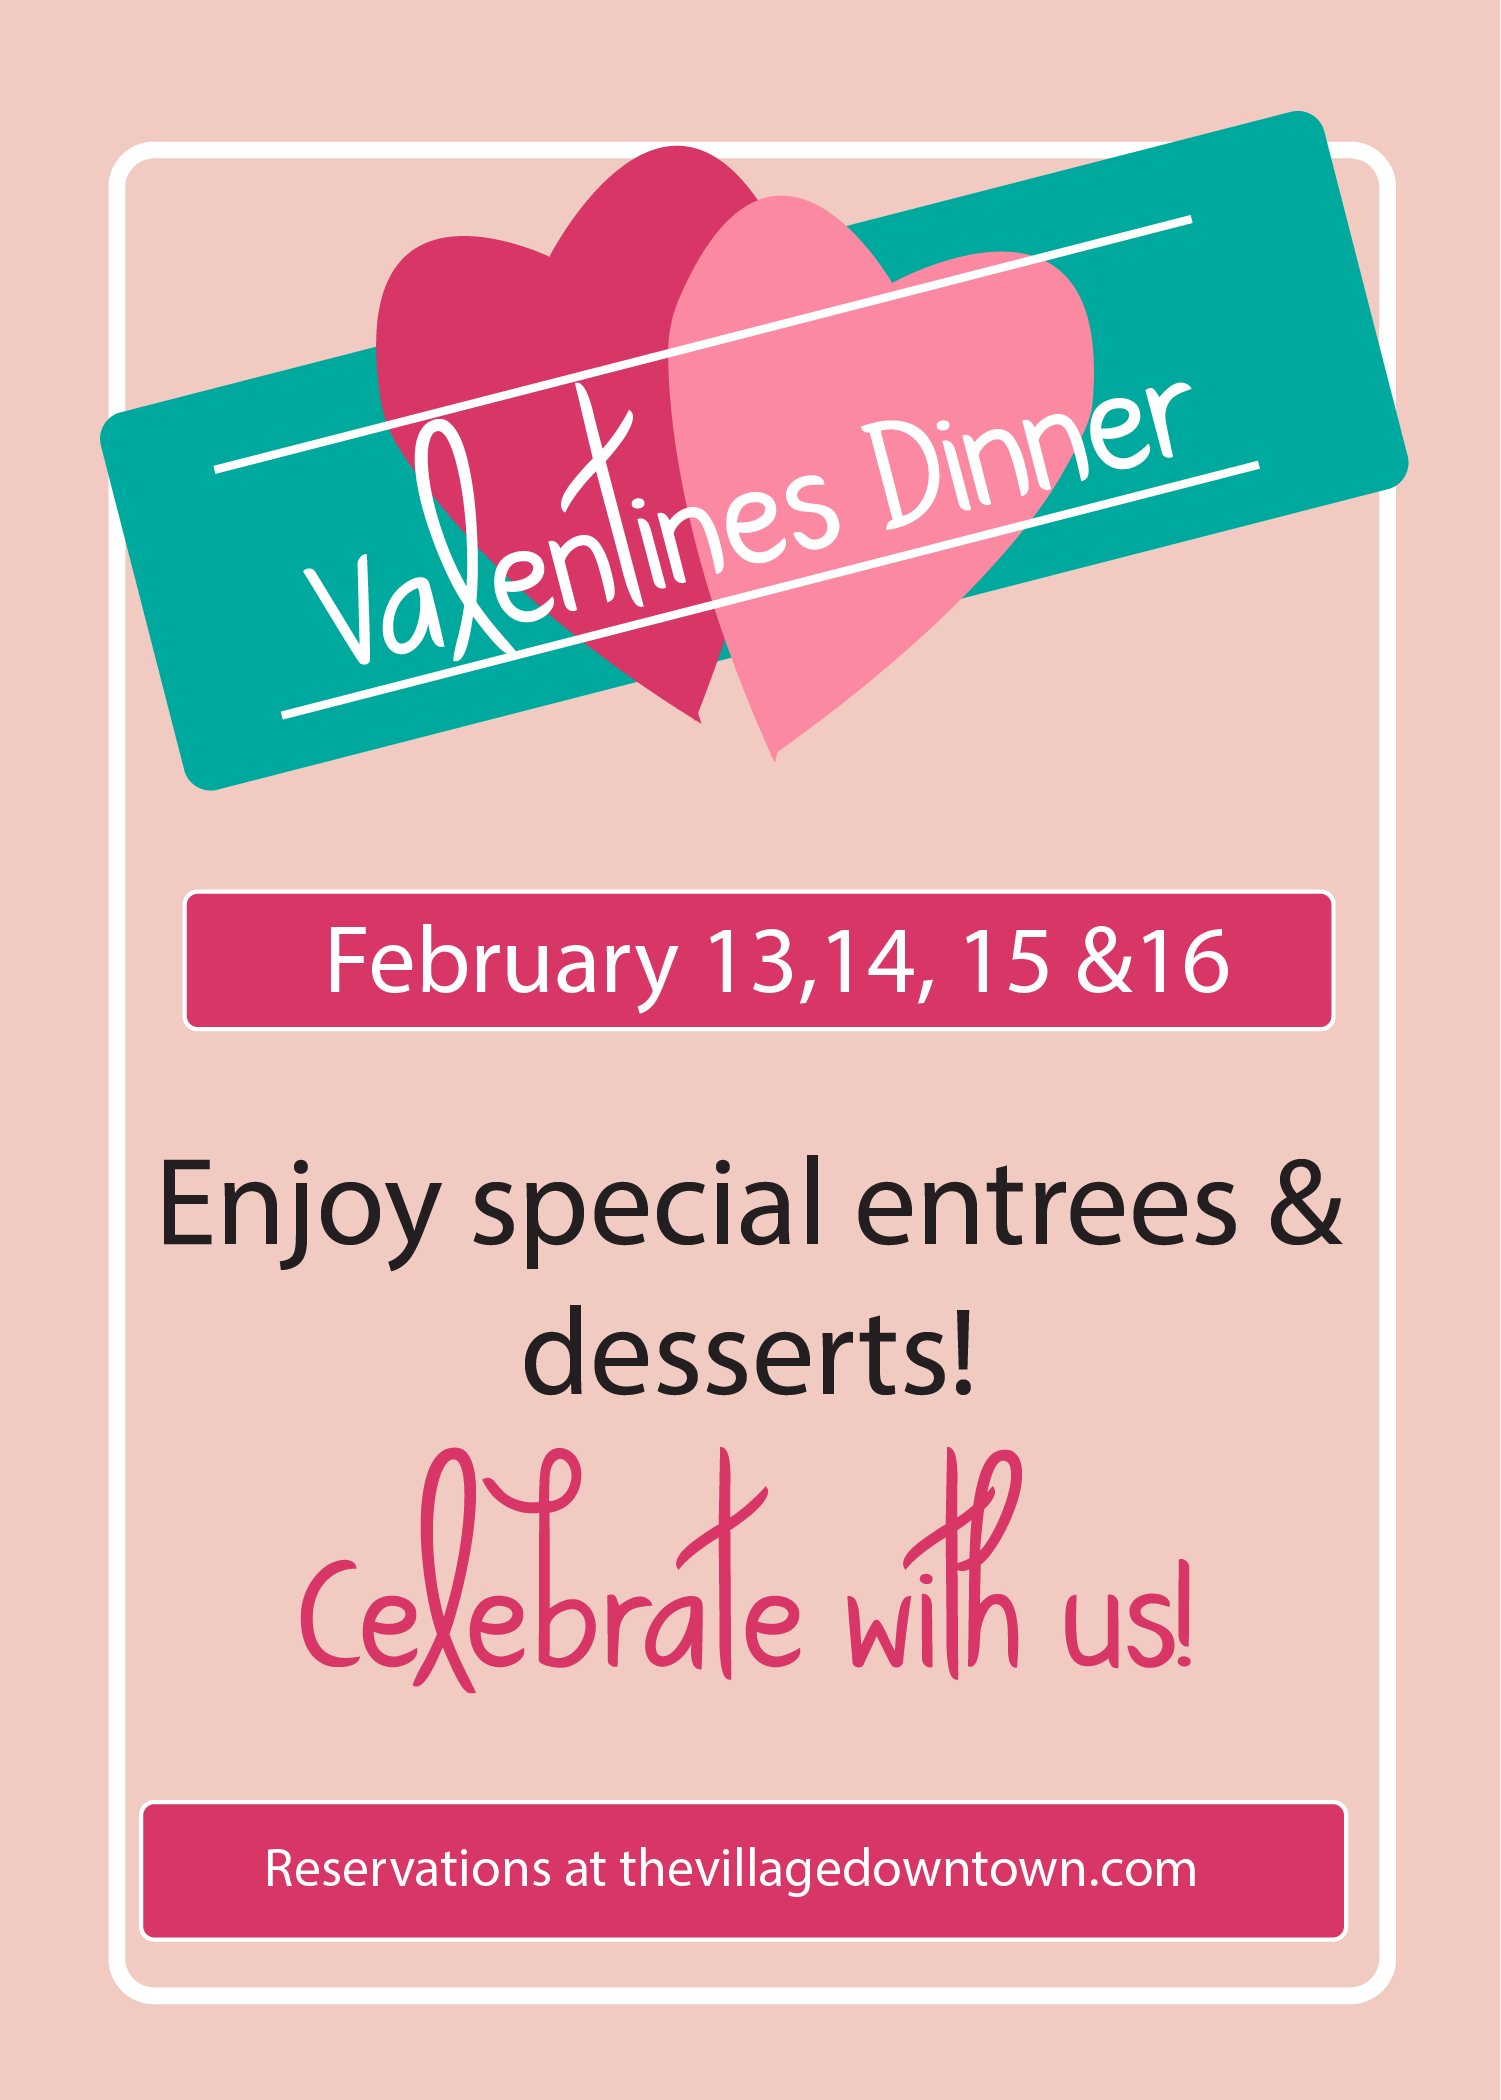 Our Valentine's Dinner Special! -